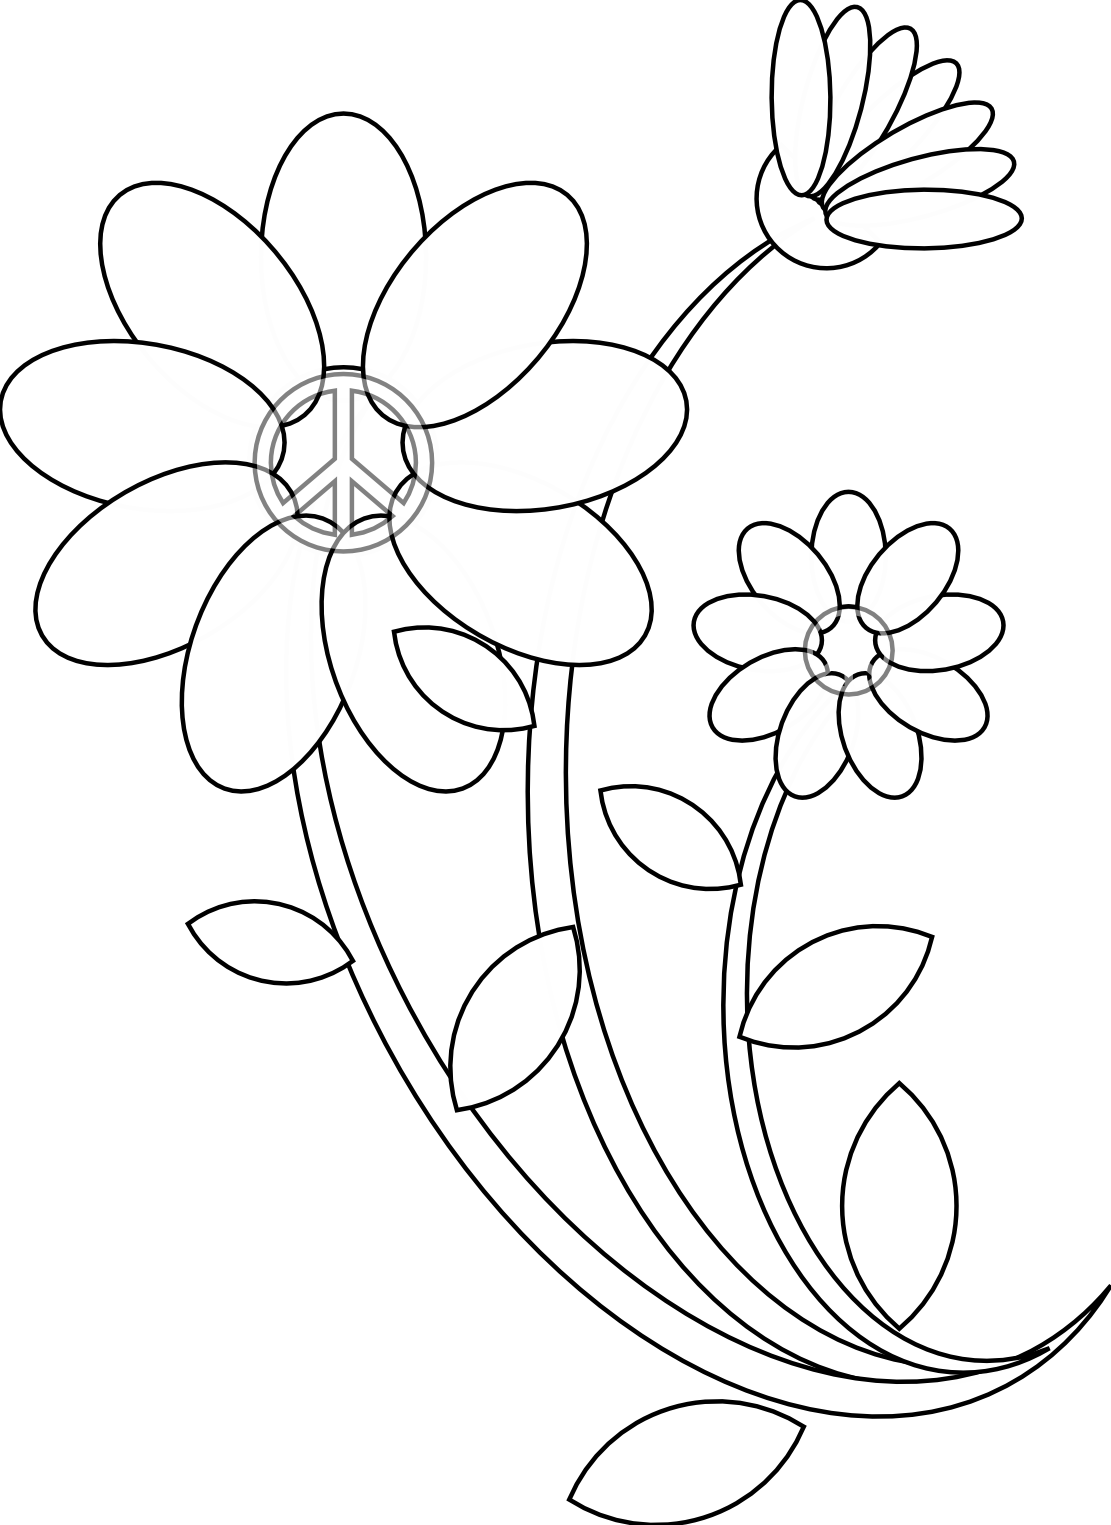 Black Line Flower Drawing : Flowers line drawing images clipart best